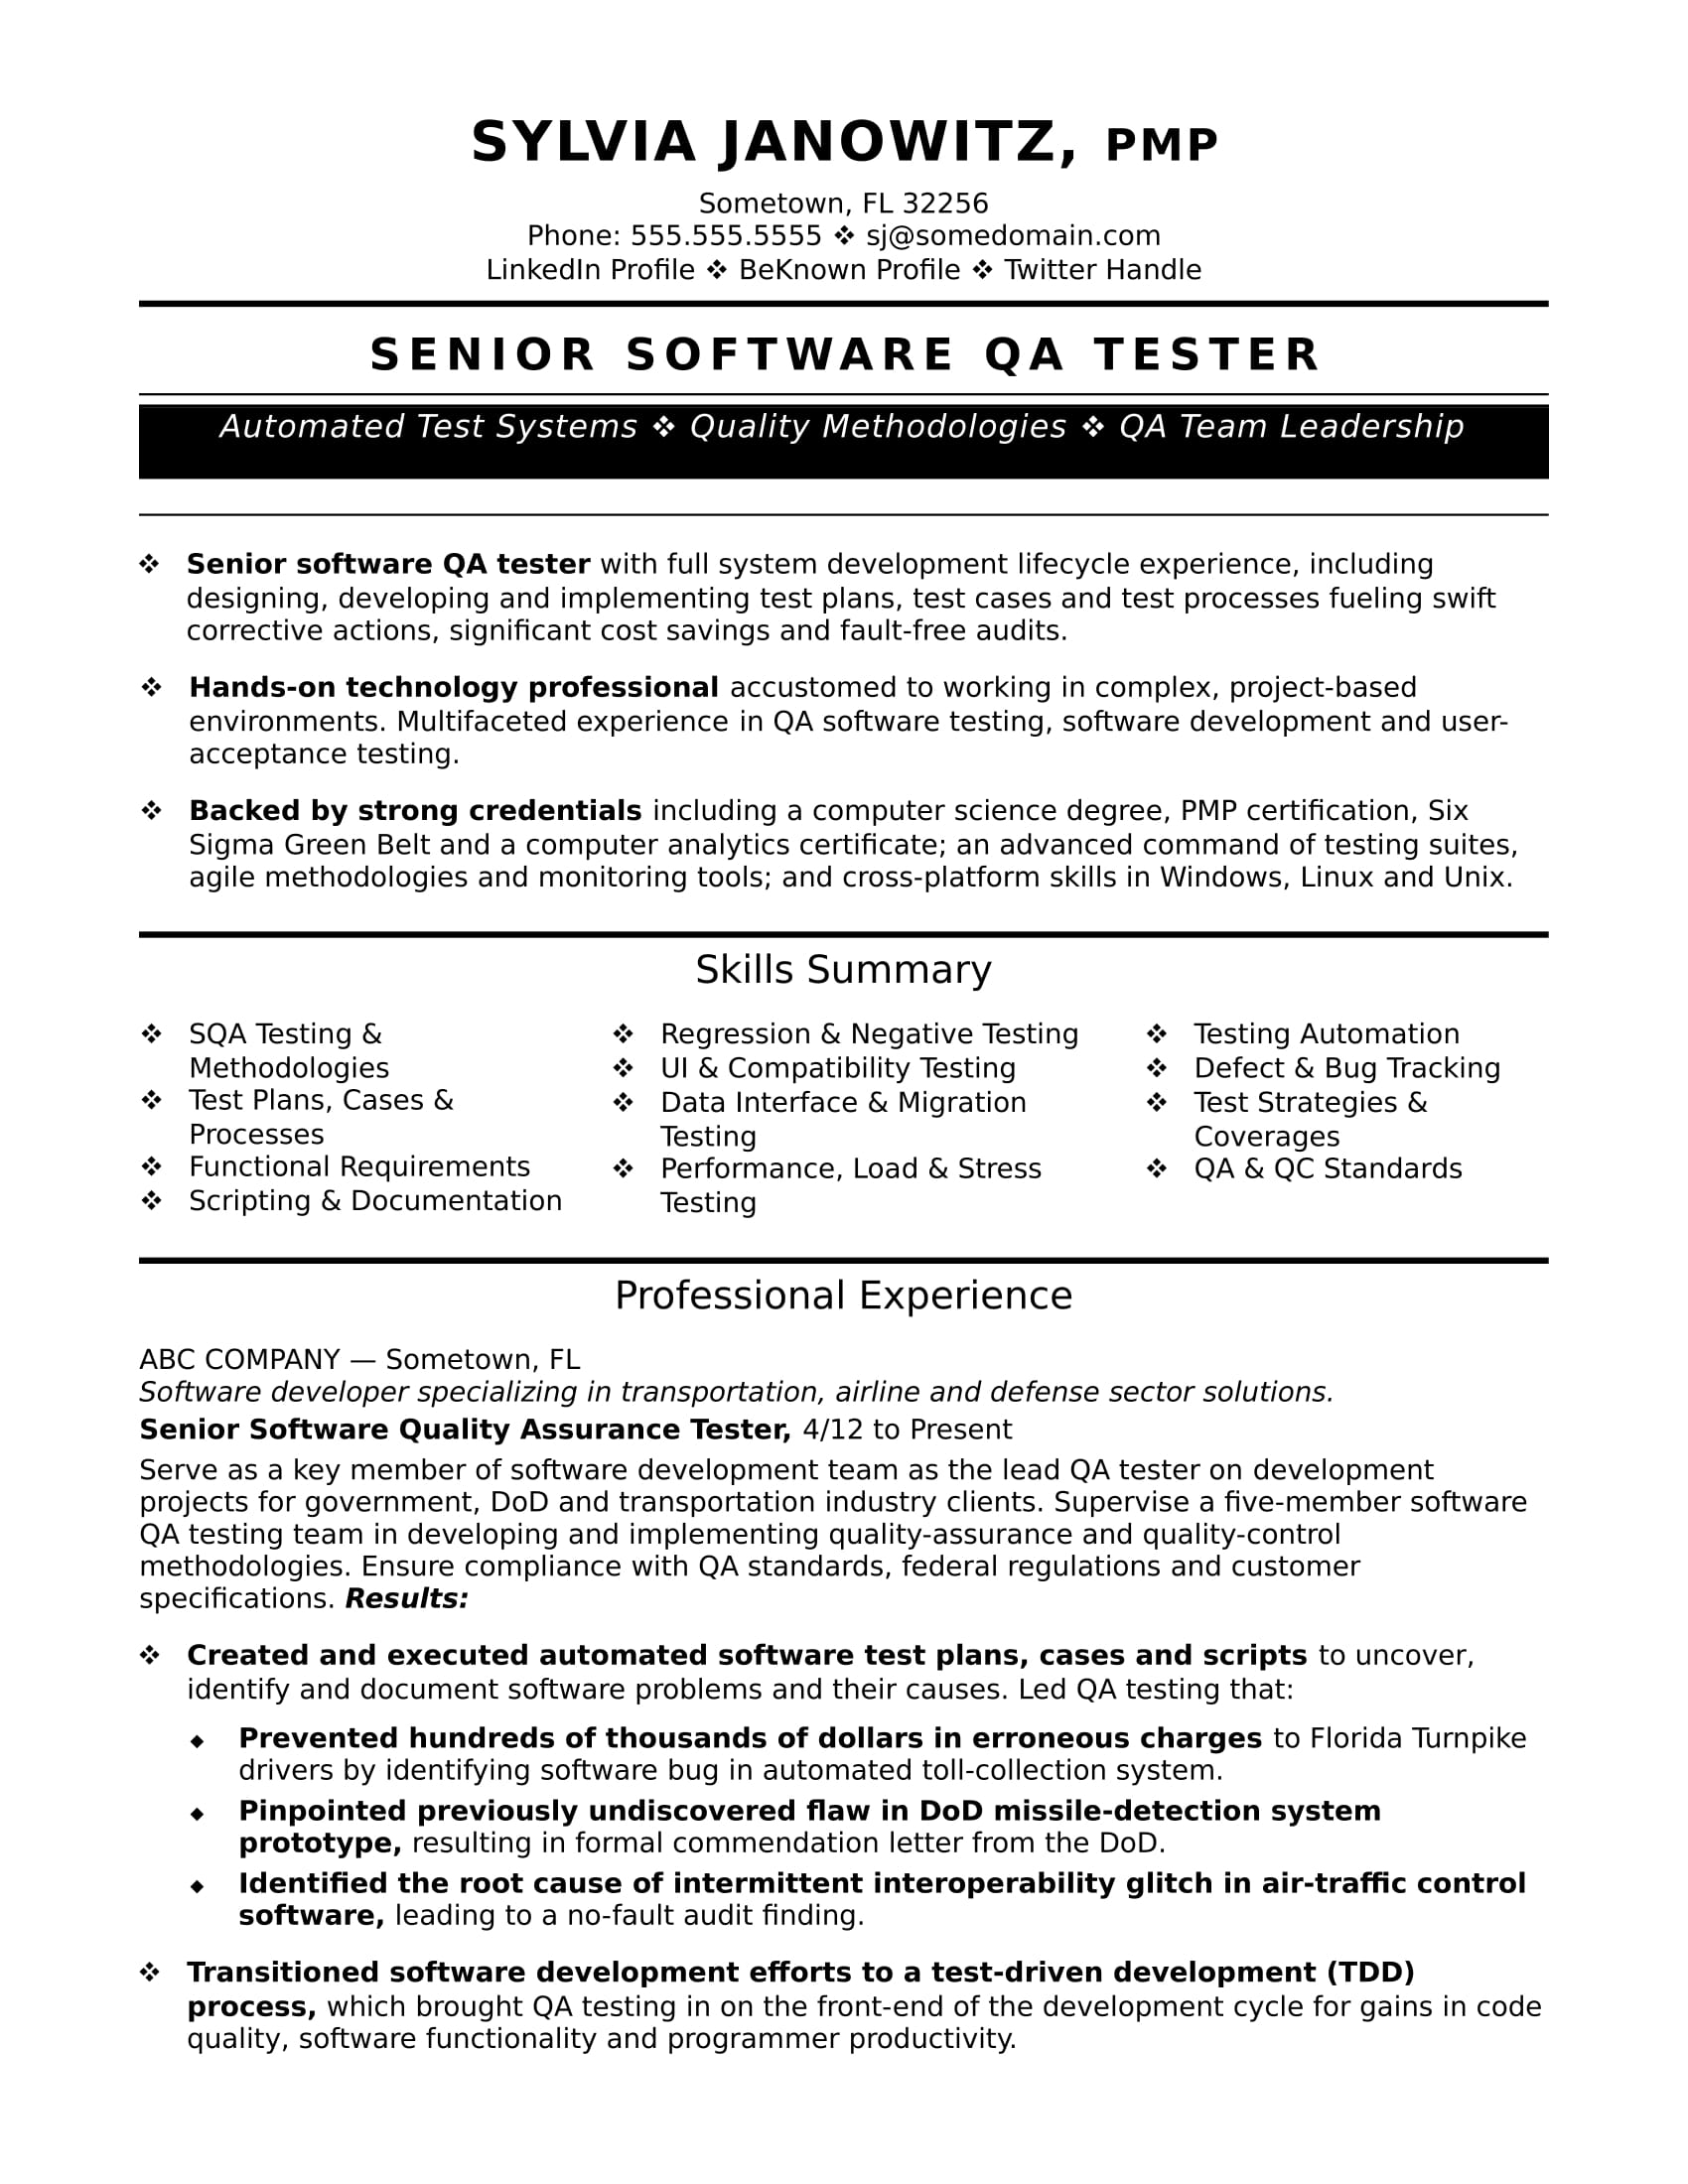 Captivating Experienced QA Software Tester Resume Sample